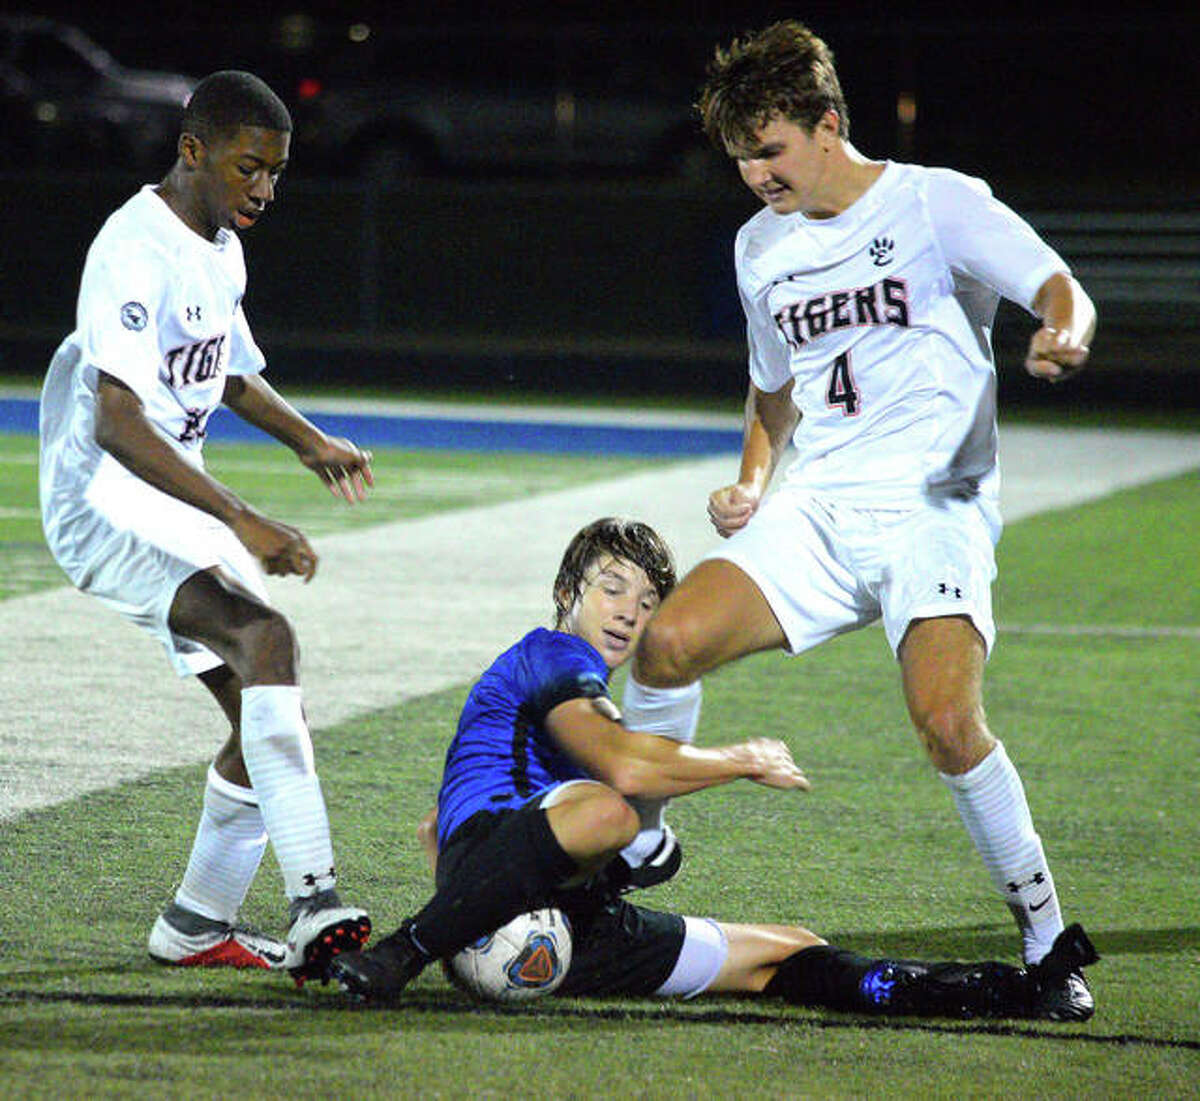 Edwardsville's Chris Agwuedu, left, and Parker Mathews, right, battle for the ball with a Columbia player during Wednesday's Metro Cup game at Columbia.